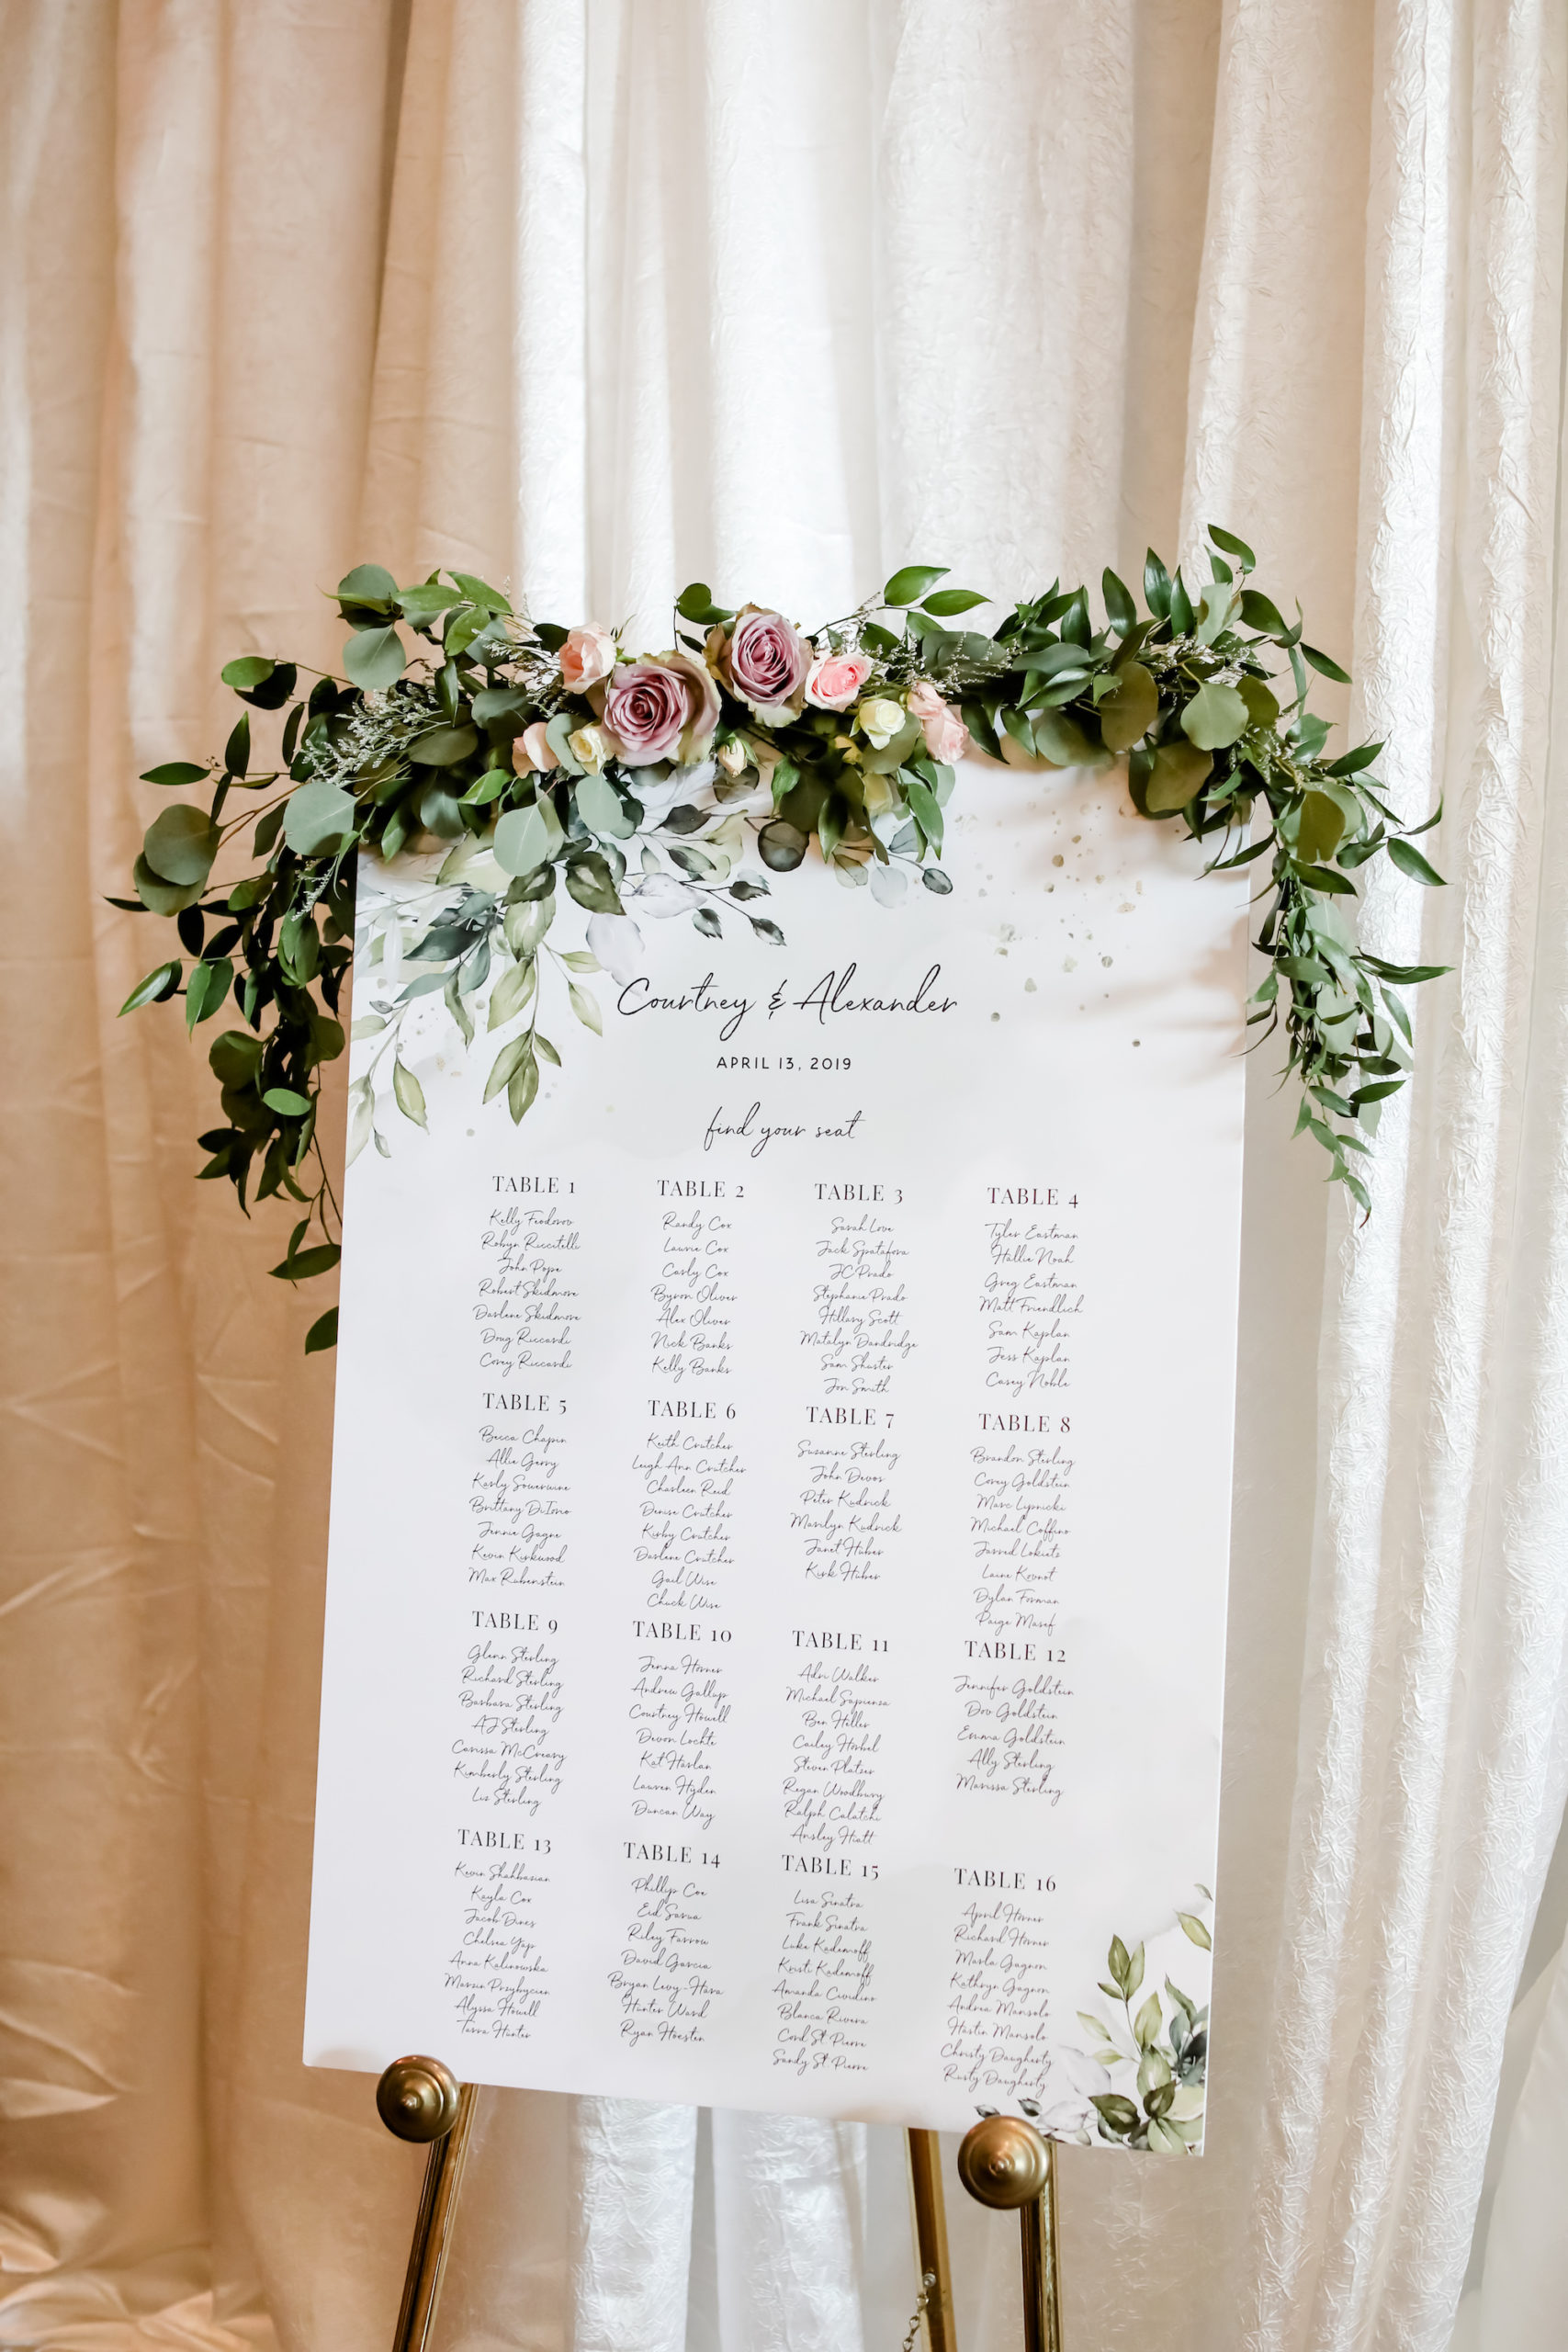 Romantic, Spring Time Inspired Wedding Decor and Seating Chart, Lush Greenery with Mauve, Purple, Pink and White Roses Floral Arrangement   Tampa Bay Wedding Planner Blue Skies Weddings and Events   Florida Wedding Photographer Lifelong Photography Studio